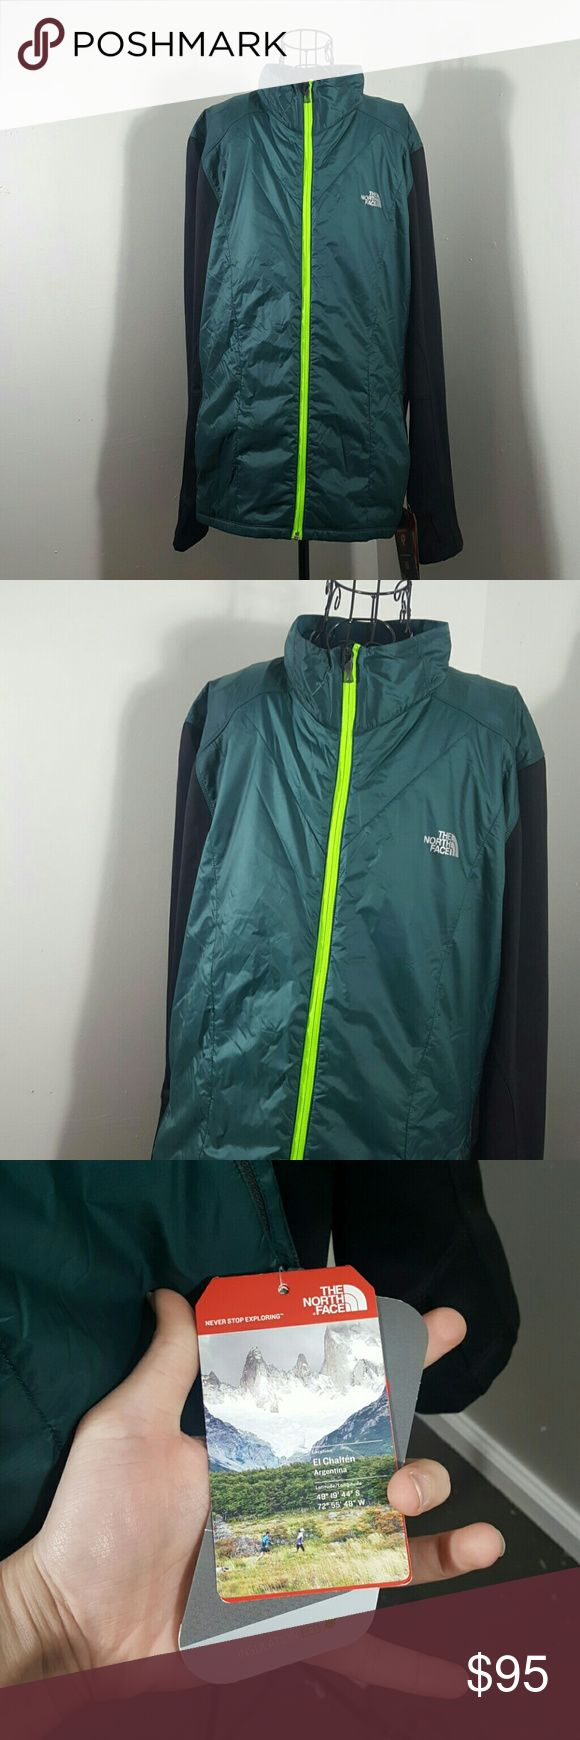 THE NORTH FACE MENS JACKET LIGHTWEIGHT THE NORTH FACE NWT MENS LIGHTWEIGHT JACKET SIZE XXL DOUBLE X 2XL The North Face Jackets & Coats Lightweight & Shirt Jackets